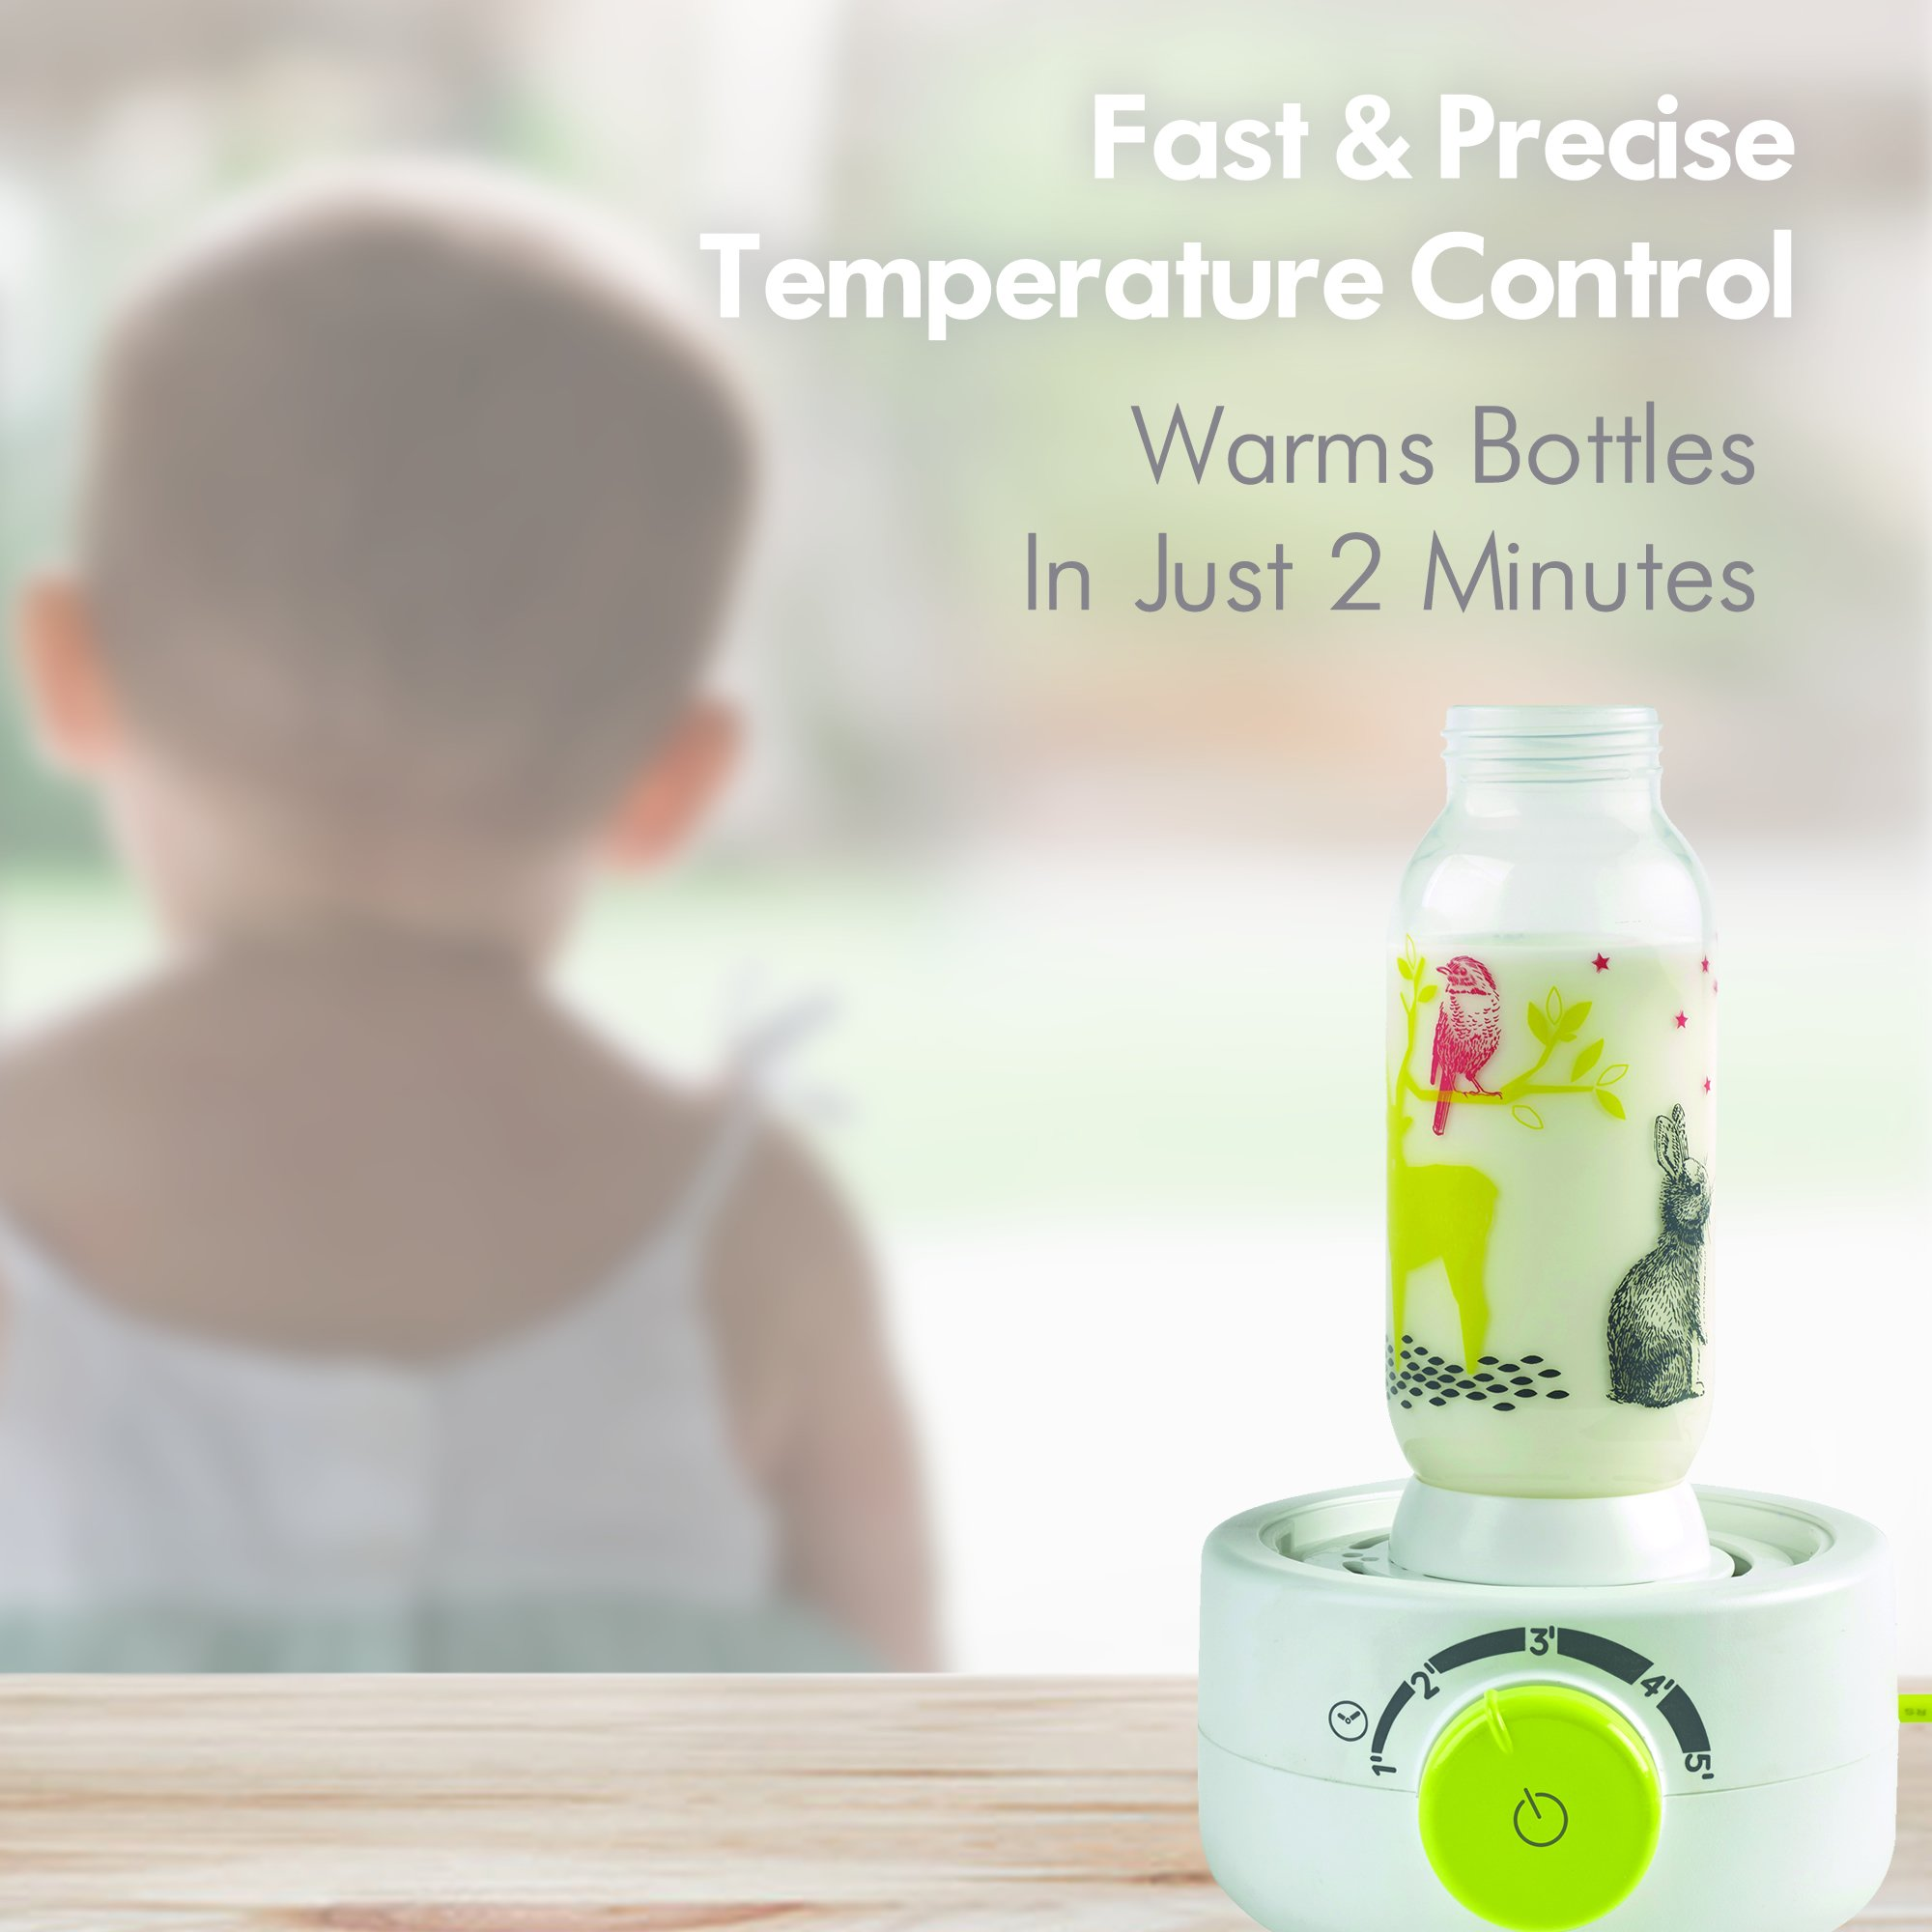 BEABA Quick Baby Bottle Warmer, Steam Sterilizer, Baby Food Heater (3-in-1) Warm Milk in Just Two Minutes, BPA and Lead Free, Simple Temperature Control, Fits All Bottle Sizes - Even Wide Neck, Neon by BEABA (Image #2)